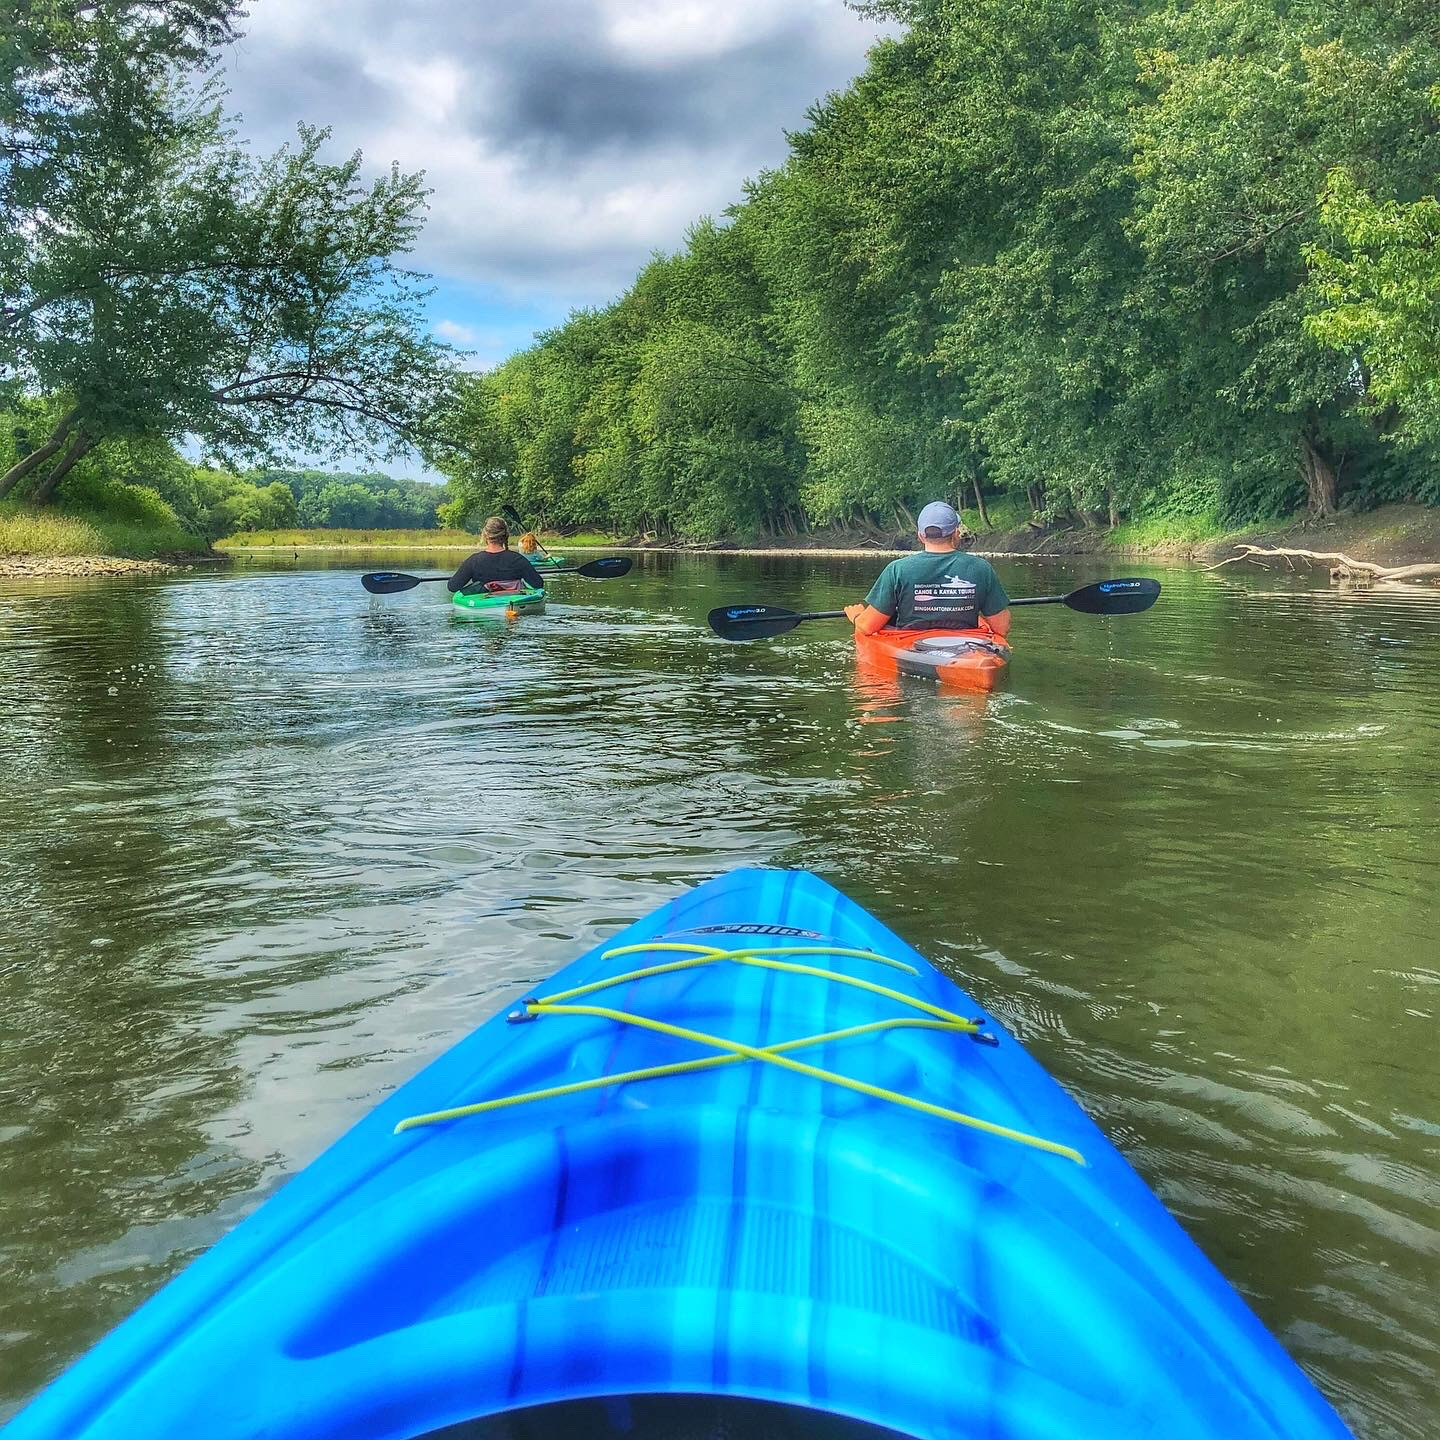 Kayaking on Susquehanna River